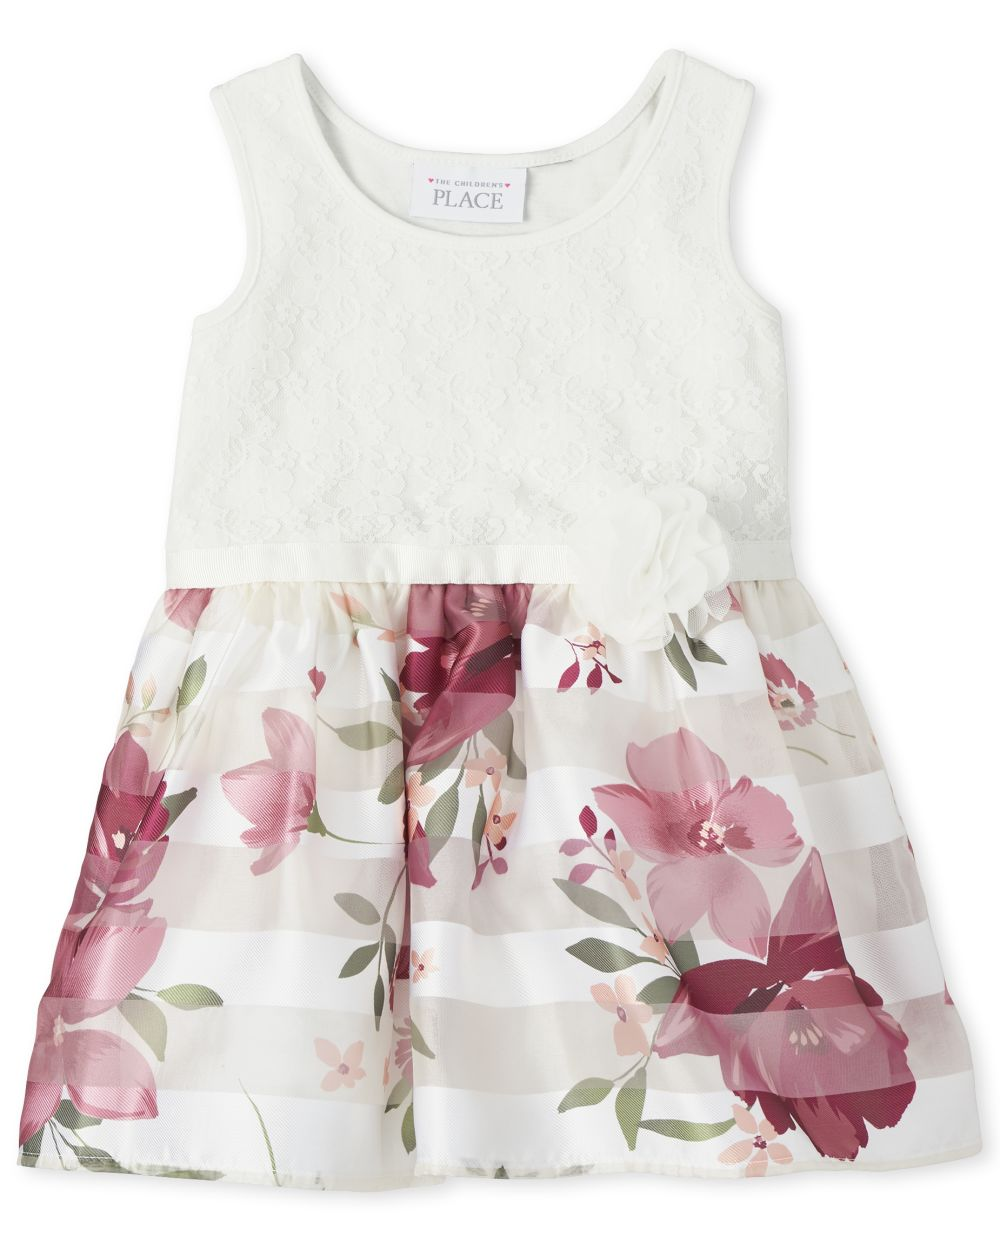 Toddler Girls Lace And Floral Knit To Woven Dress